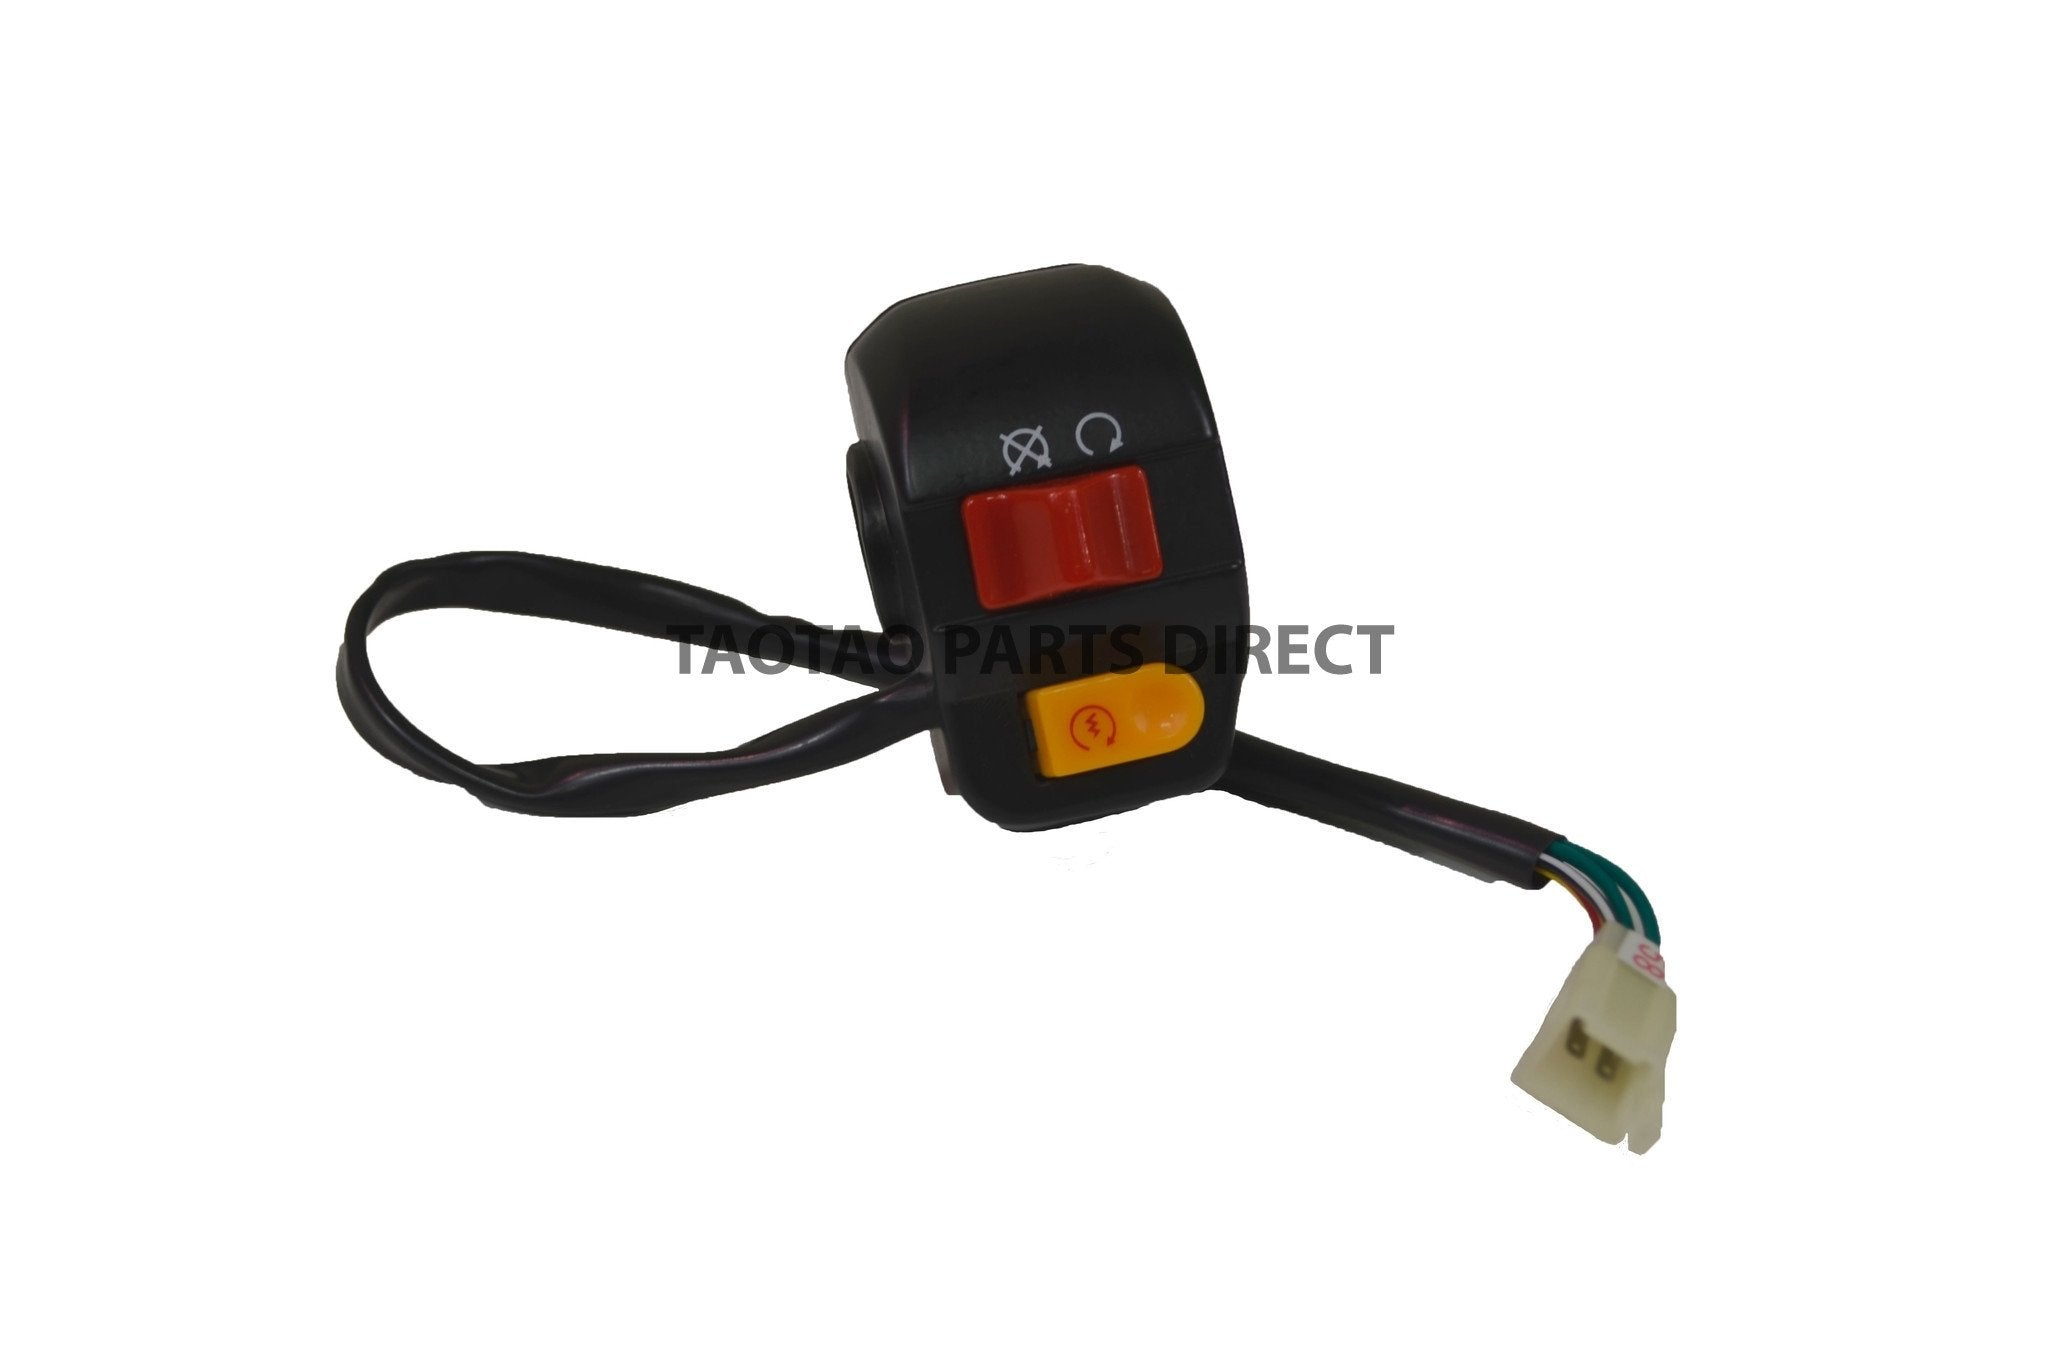 Taotao Parts Direct >> Scooter Right Multifunction Switch | TaoTao Parts Direct